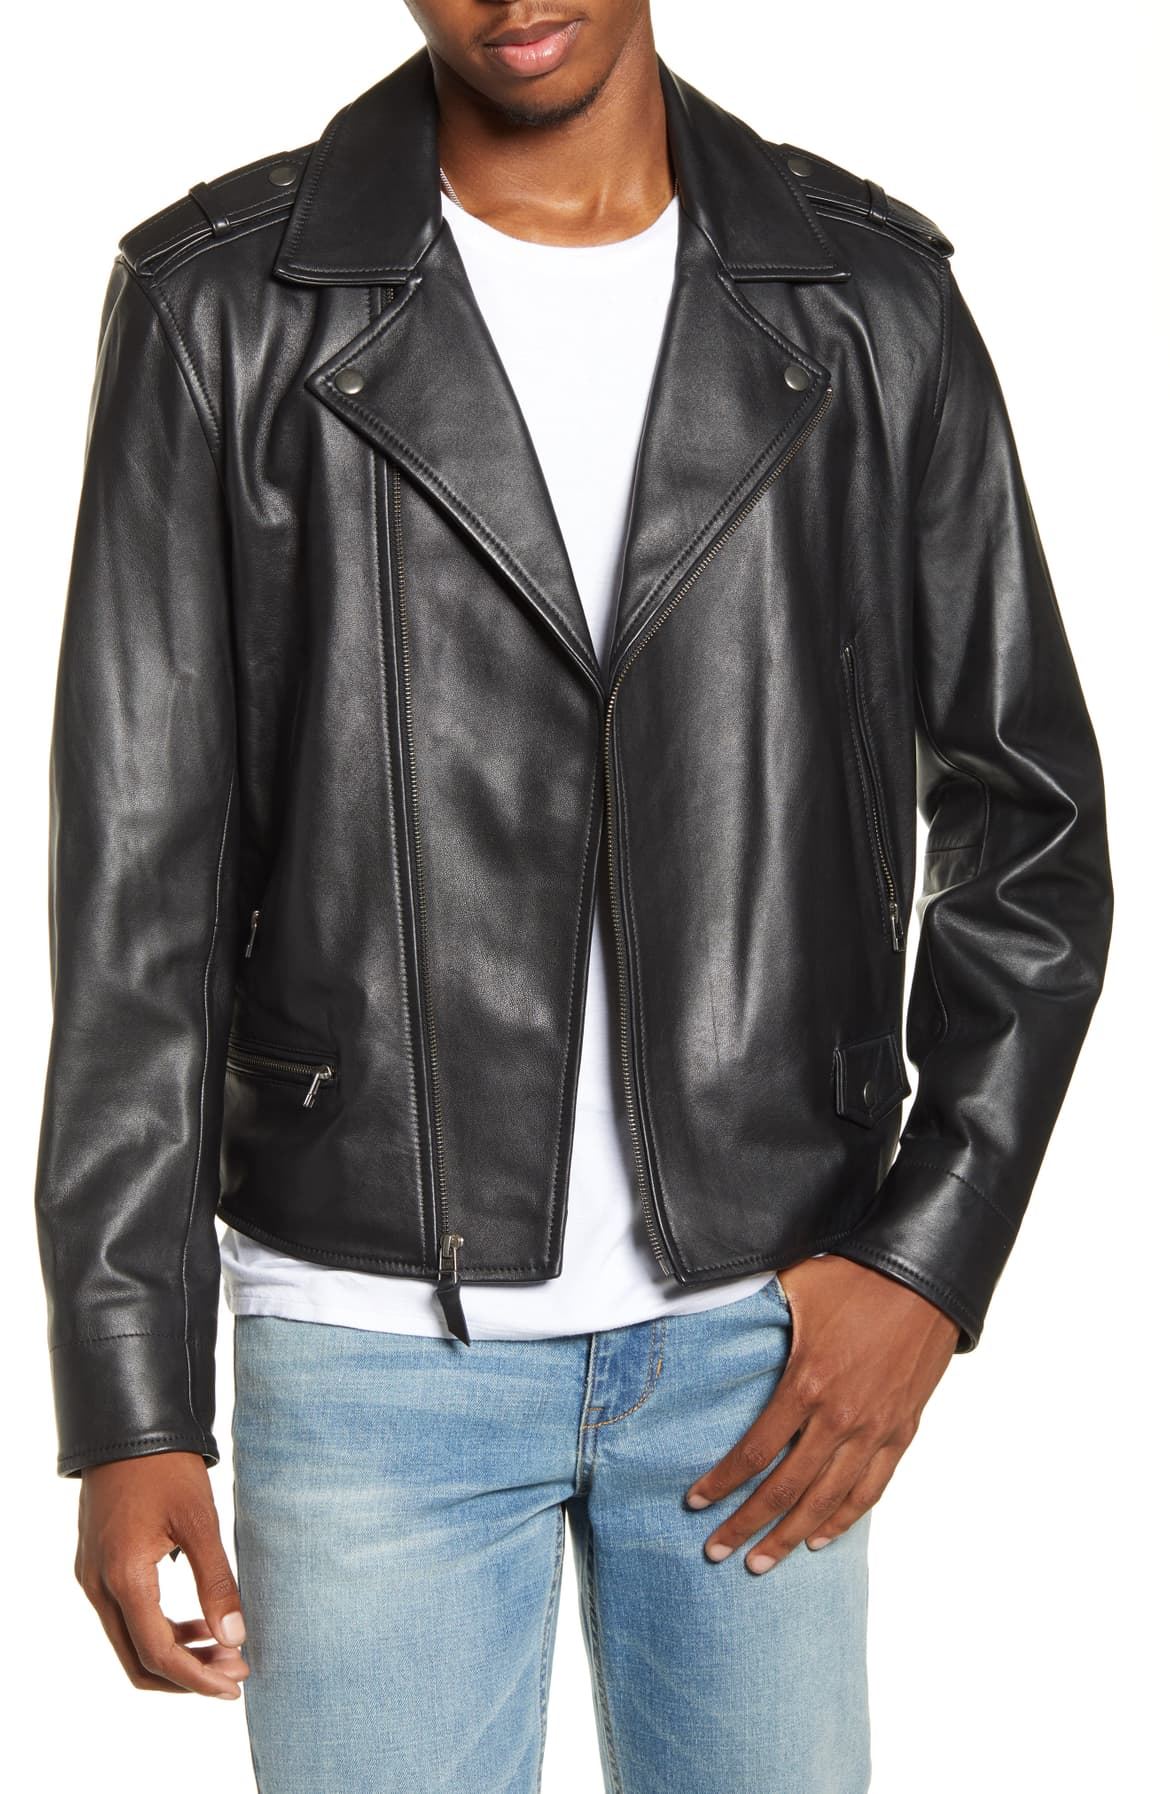 BP. x Alex Costa Men's Collection Launch Nordstrom Leather Jacket